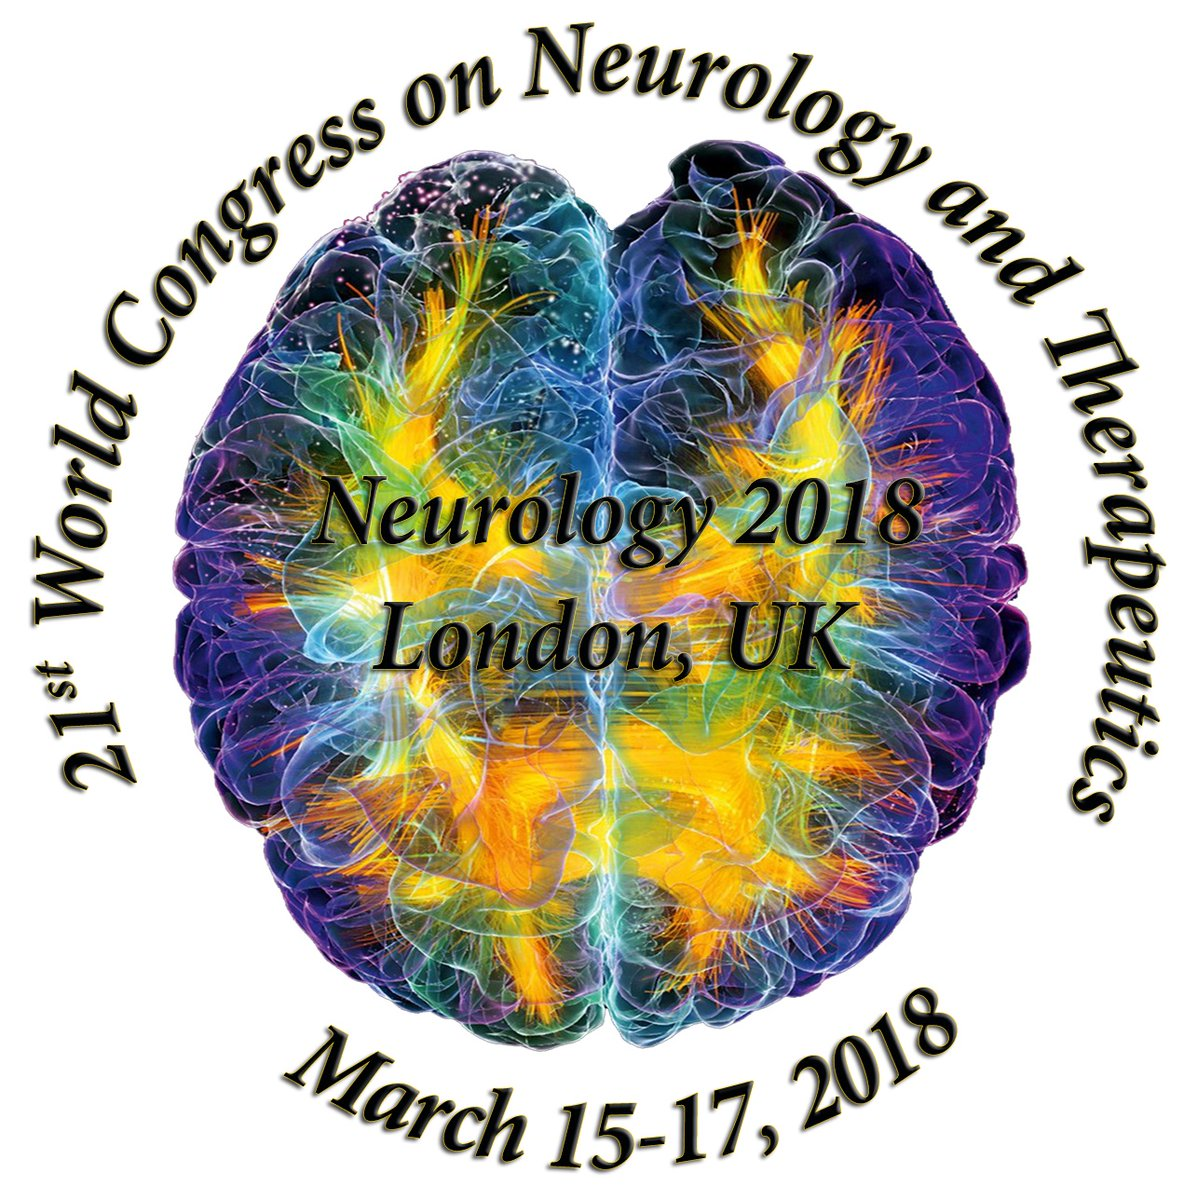 21th World Congress on Neurology and Therapeutics, London, UK